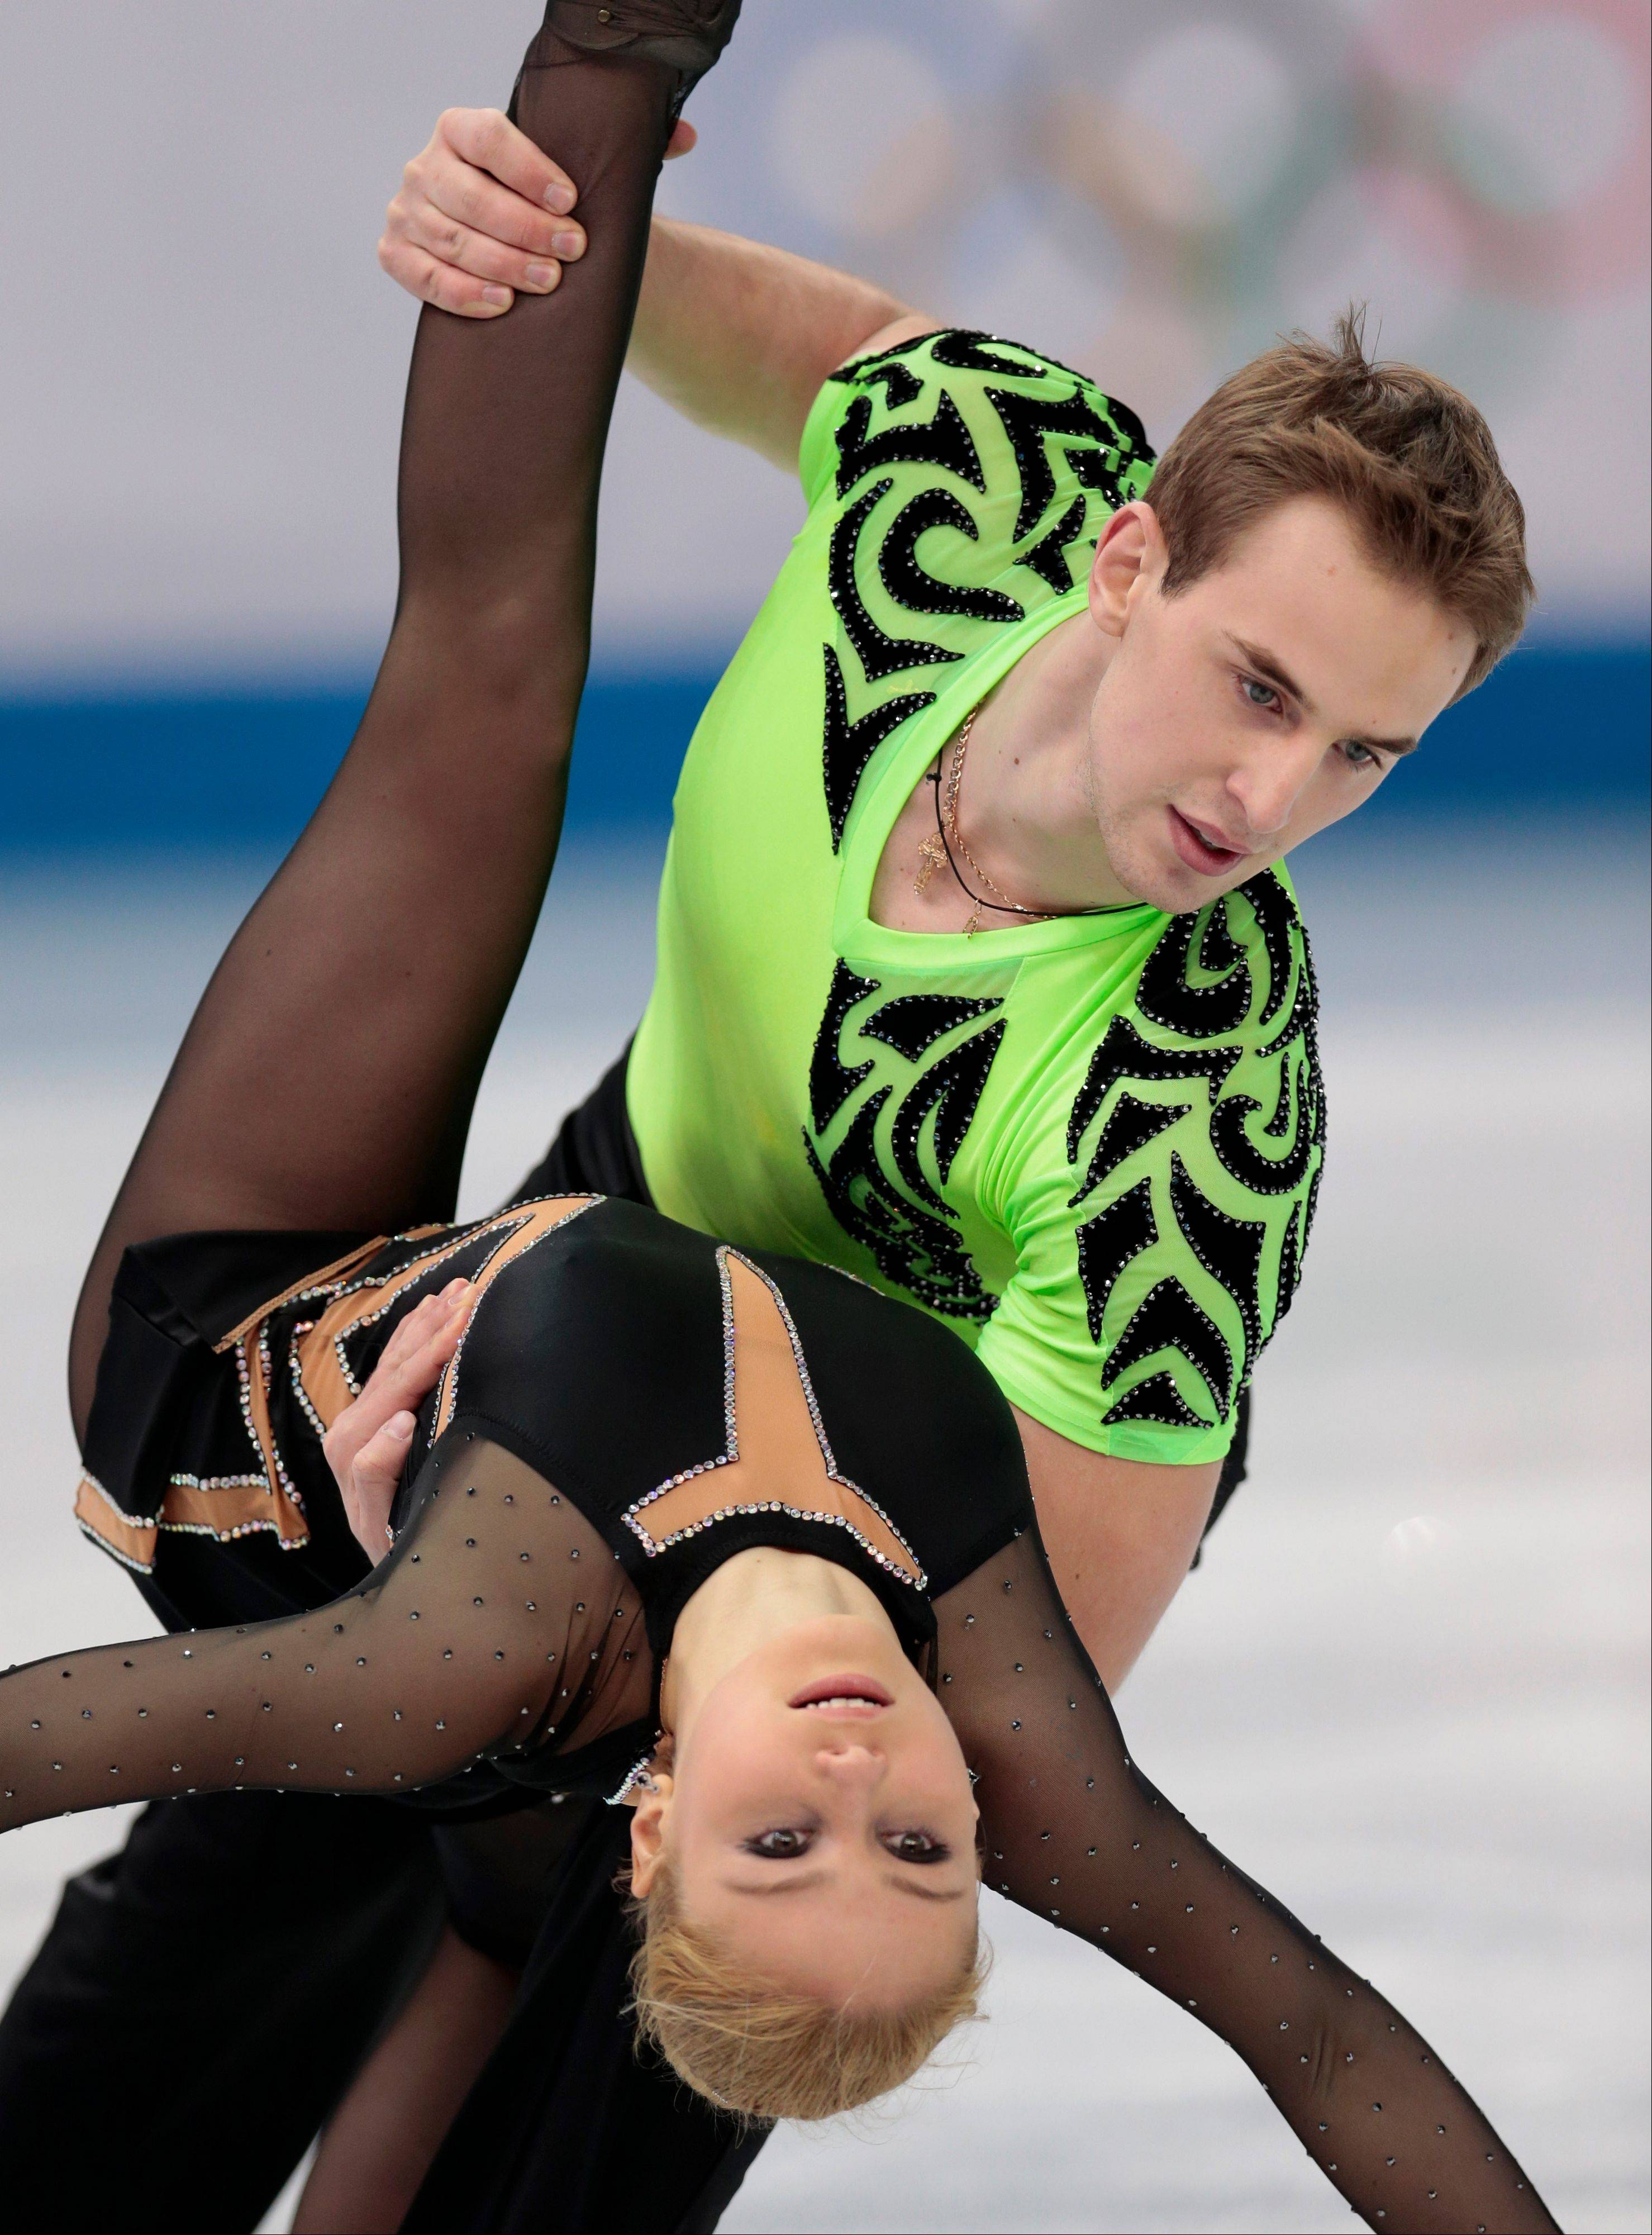 Julia Lavrentieva and Yuri Rudyk of Ukraine compete in the team pairs short program figure skating competition at the Iceberg Skating Palace during the 2014 Winter Olympics.